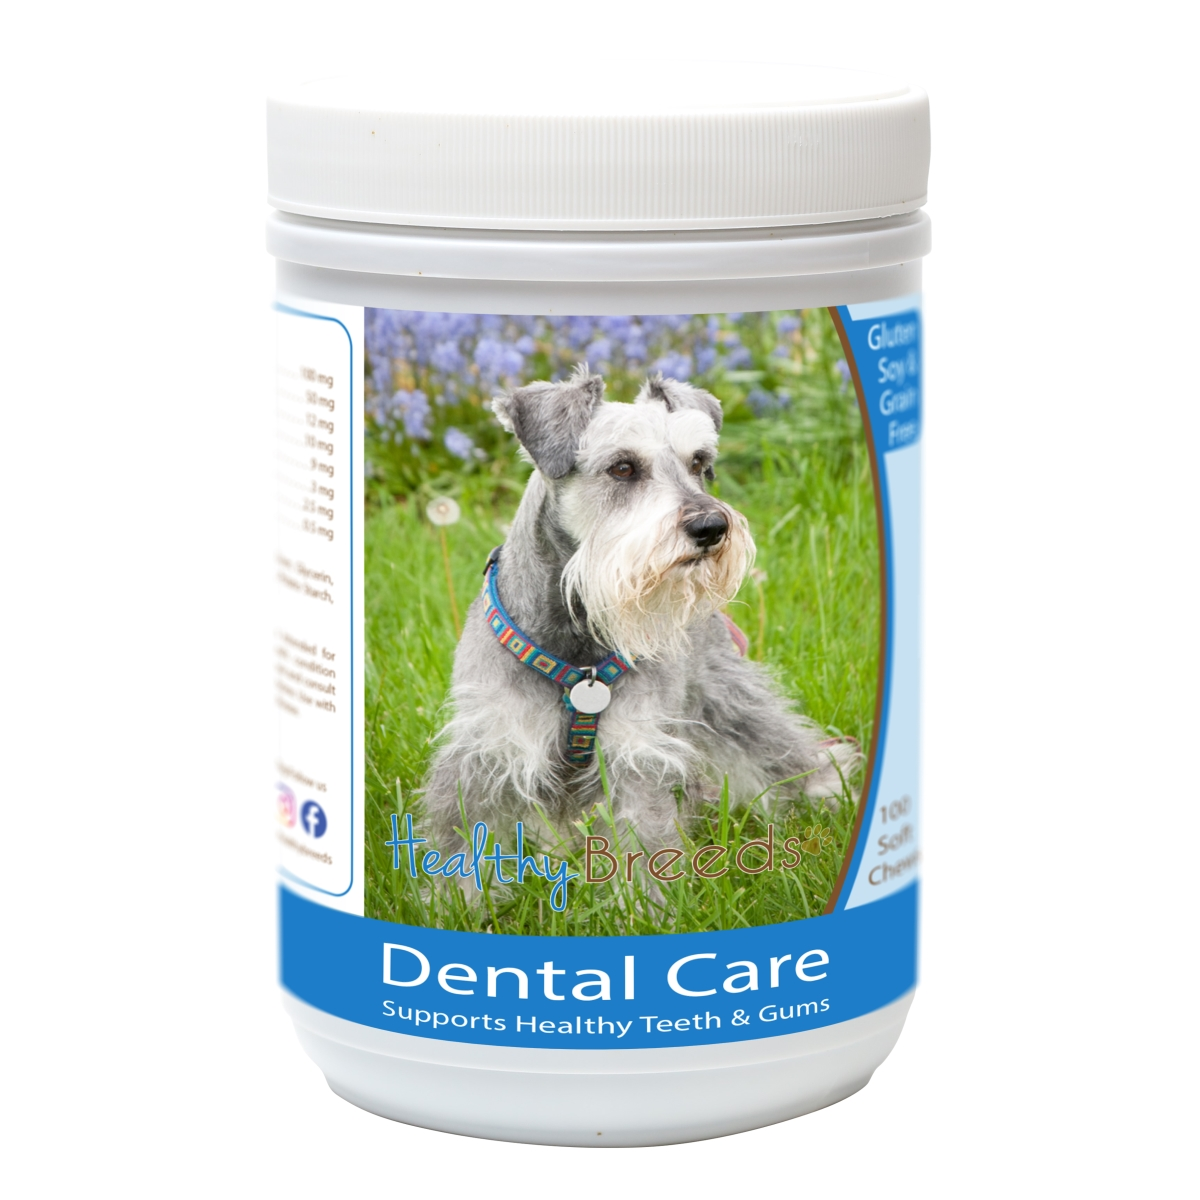 Healthy Breeds 840235163145 Miniature Schnauzer Breath Care Soft Chews for Dogs - 60 Count